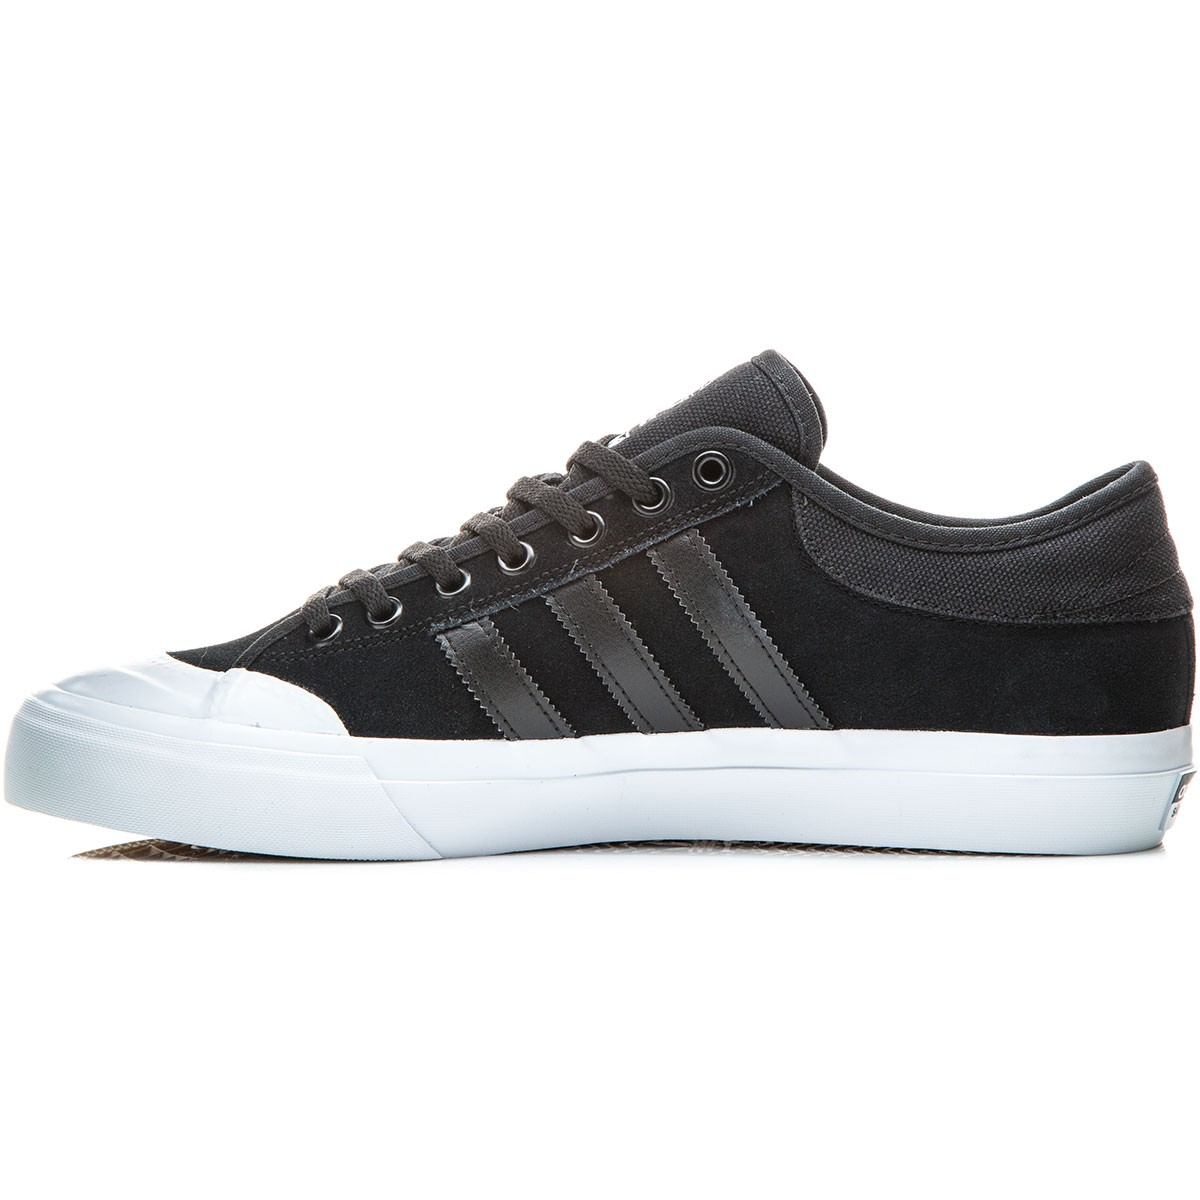 cbe9da4d92d ... Mens Black Skate Shoes  authentic quality 01863 b4eac Adidas Matchcourt  Shoes - BlackBlackWhite - 6.0 ...